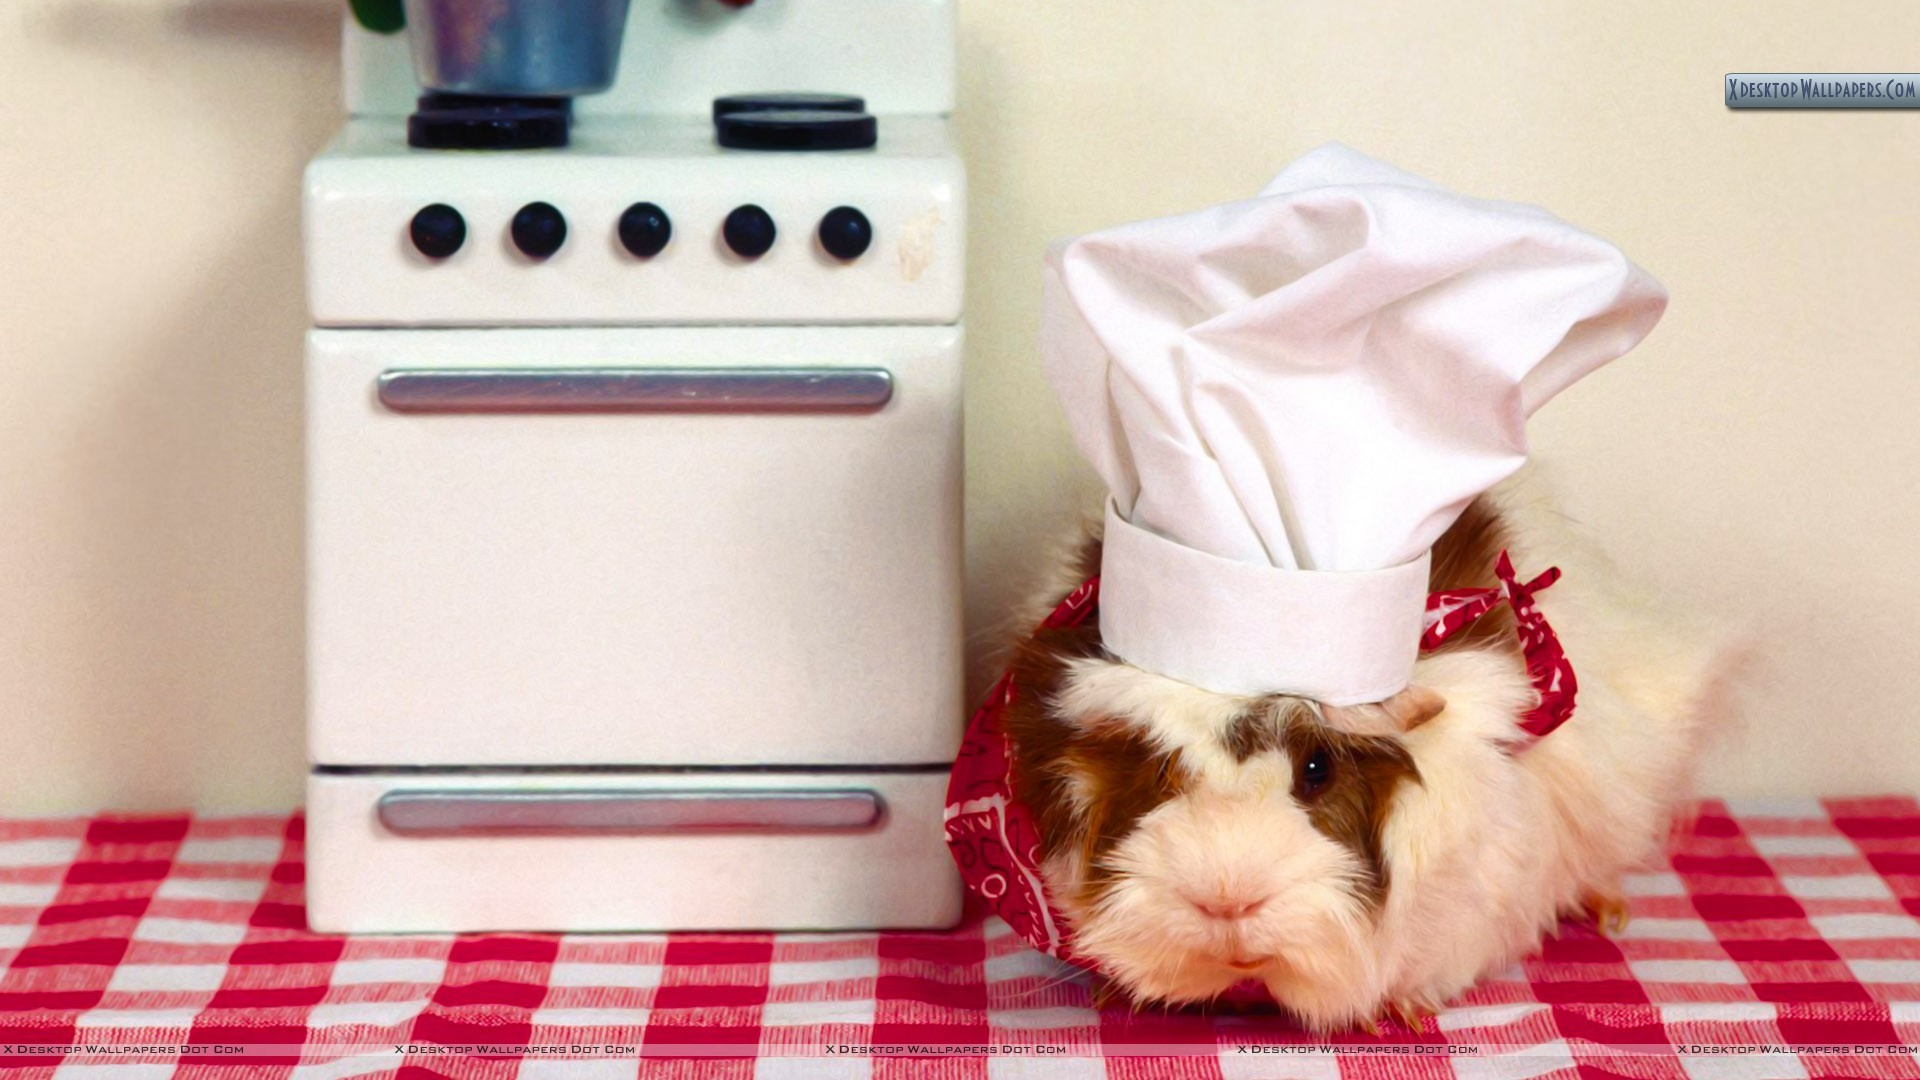 Guinea Pig Wallpaper, Animals: Guinea Pig, champion pig, white Pictures Of  Guinea Pigs Wallpapers Wallpapers)